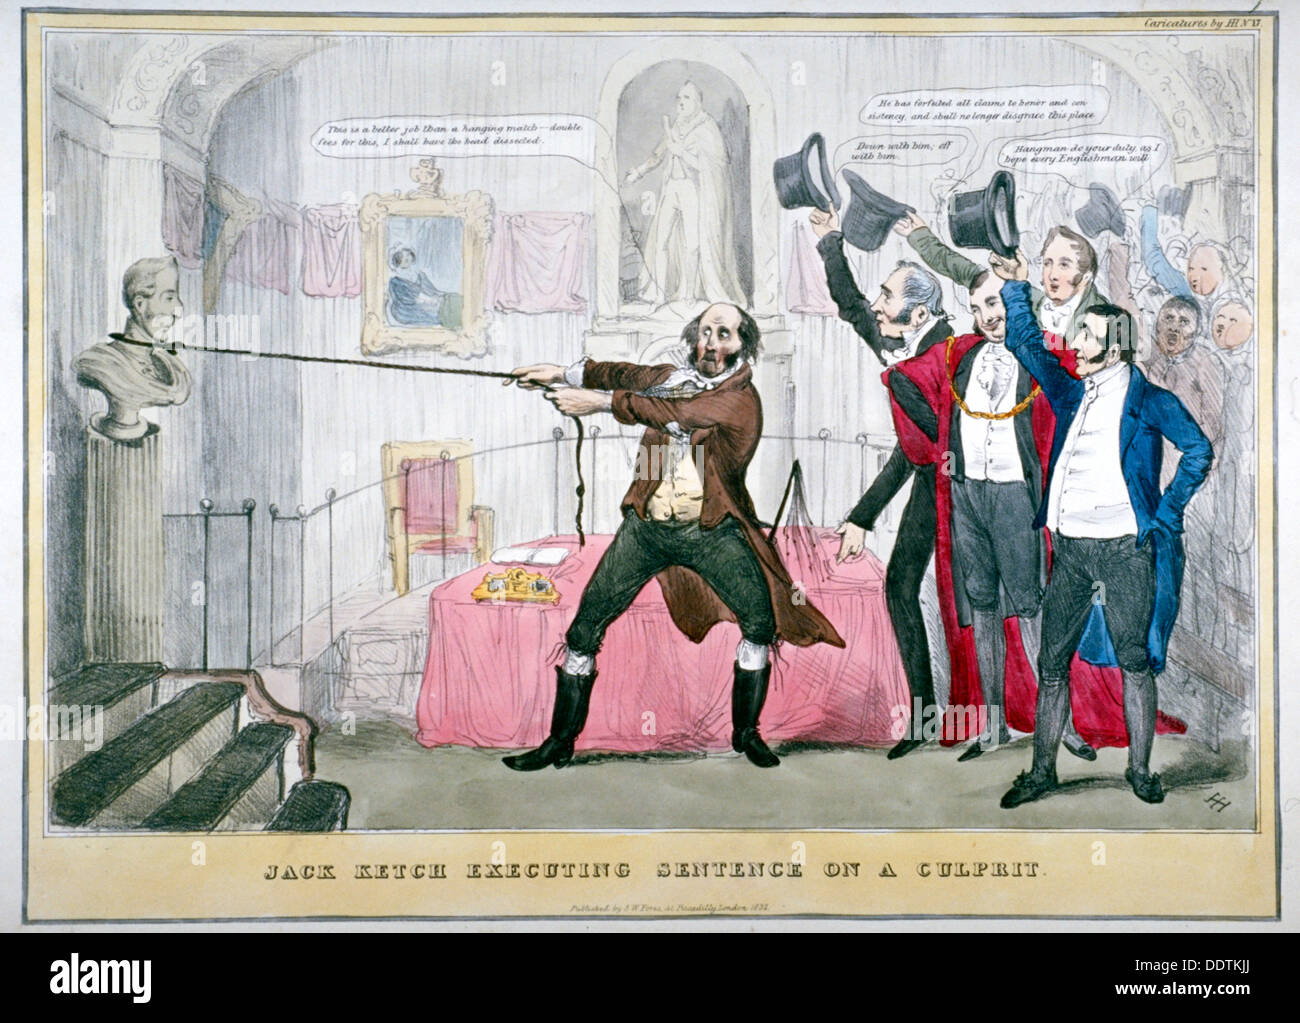 'Jack Ketch executing sentence on a culprit', 1832.                                 Artist: Anon - Stock Image